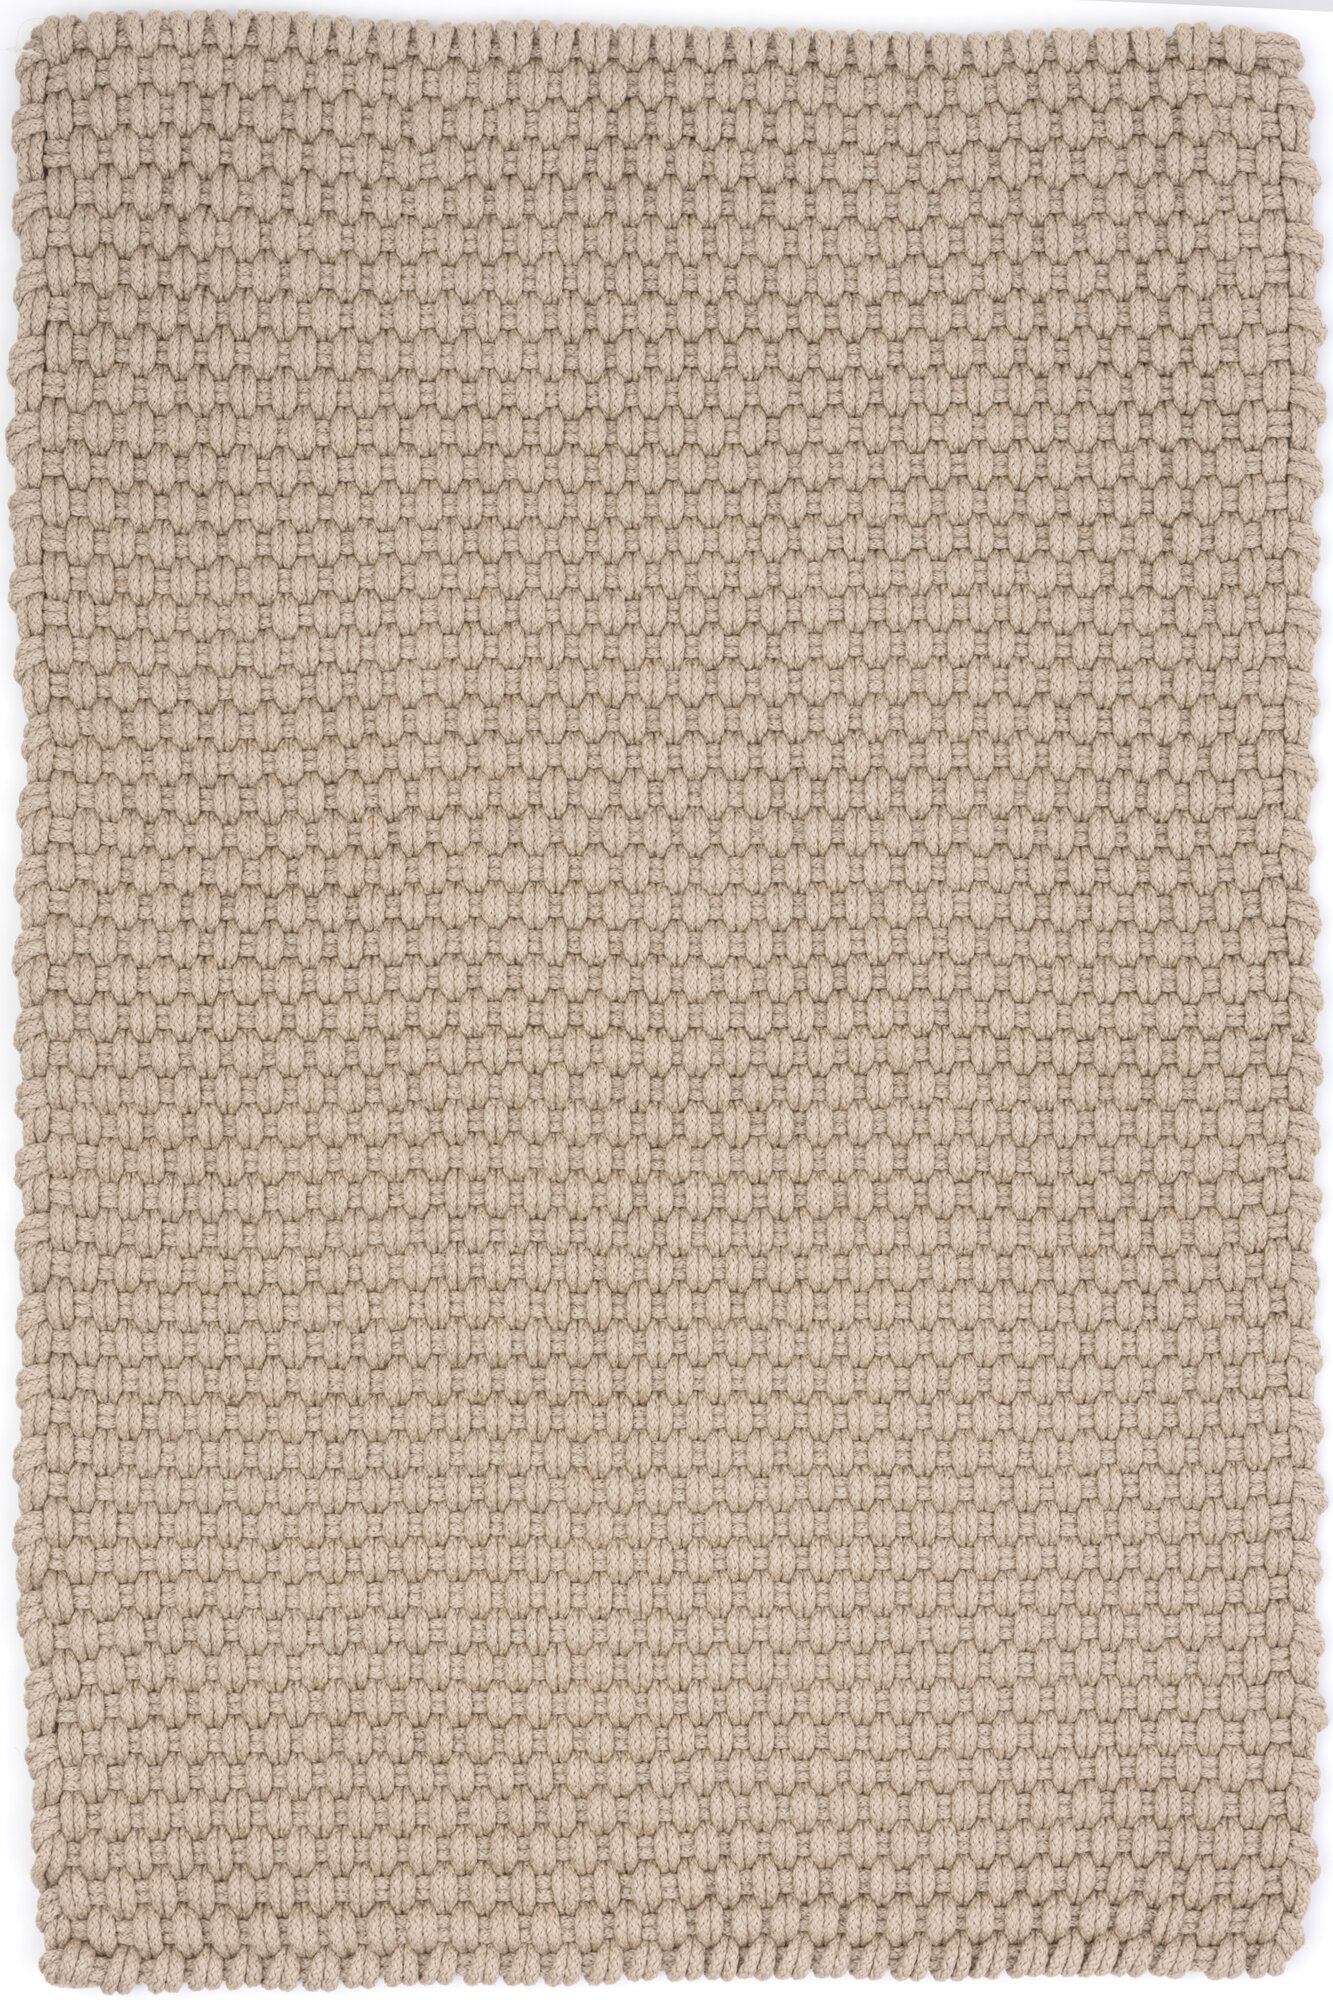 Dash and Albert Rugs Rope Platinum Indoor/Outdoor Area Rug Rug Size: SAMPLE: 12